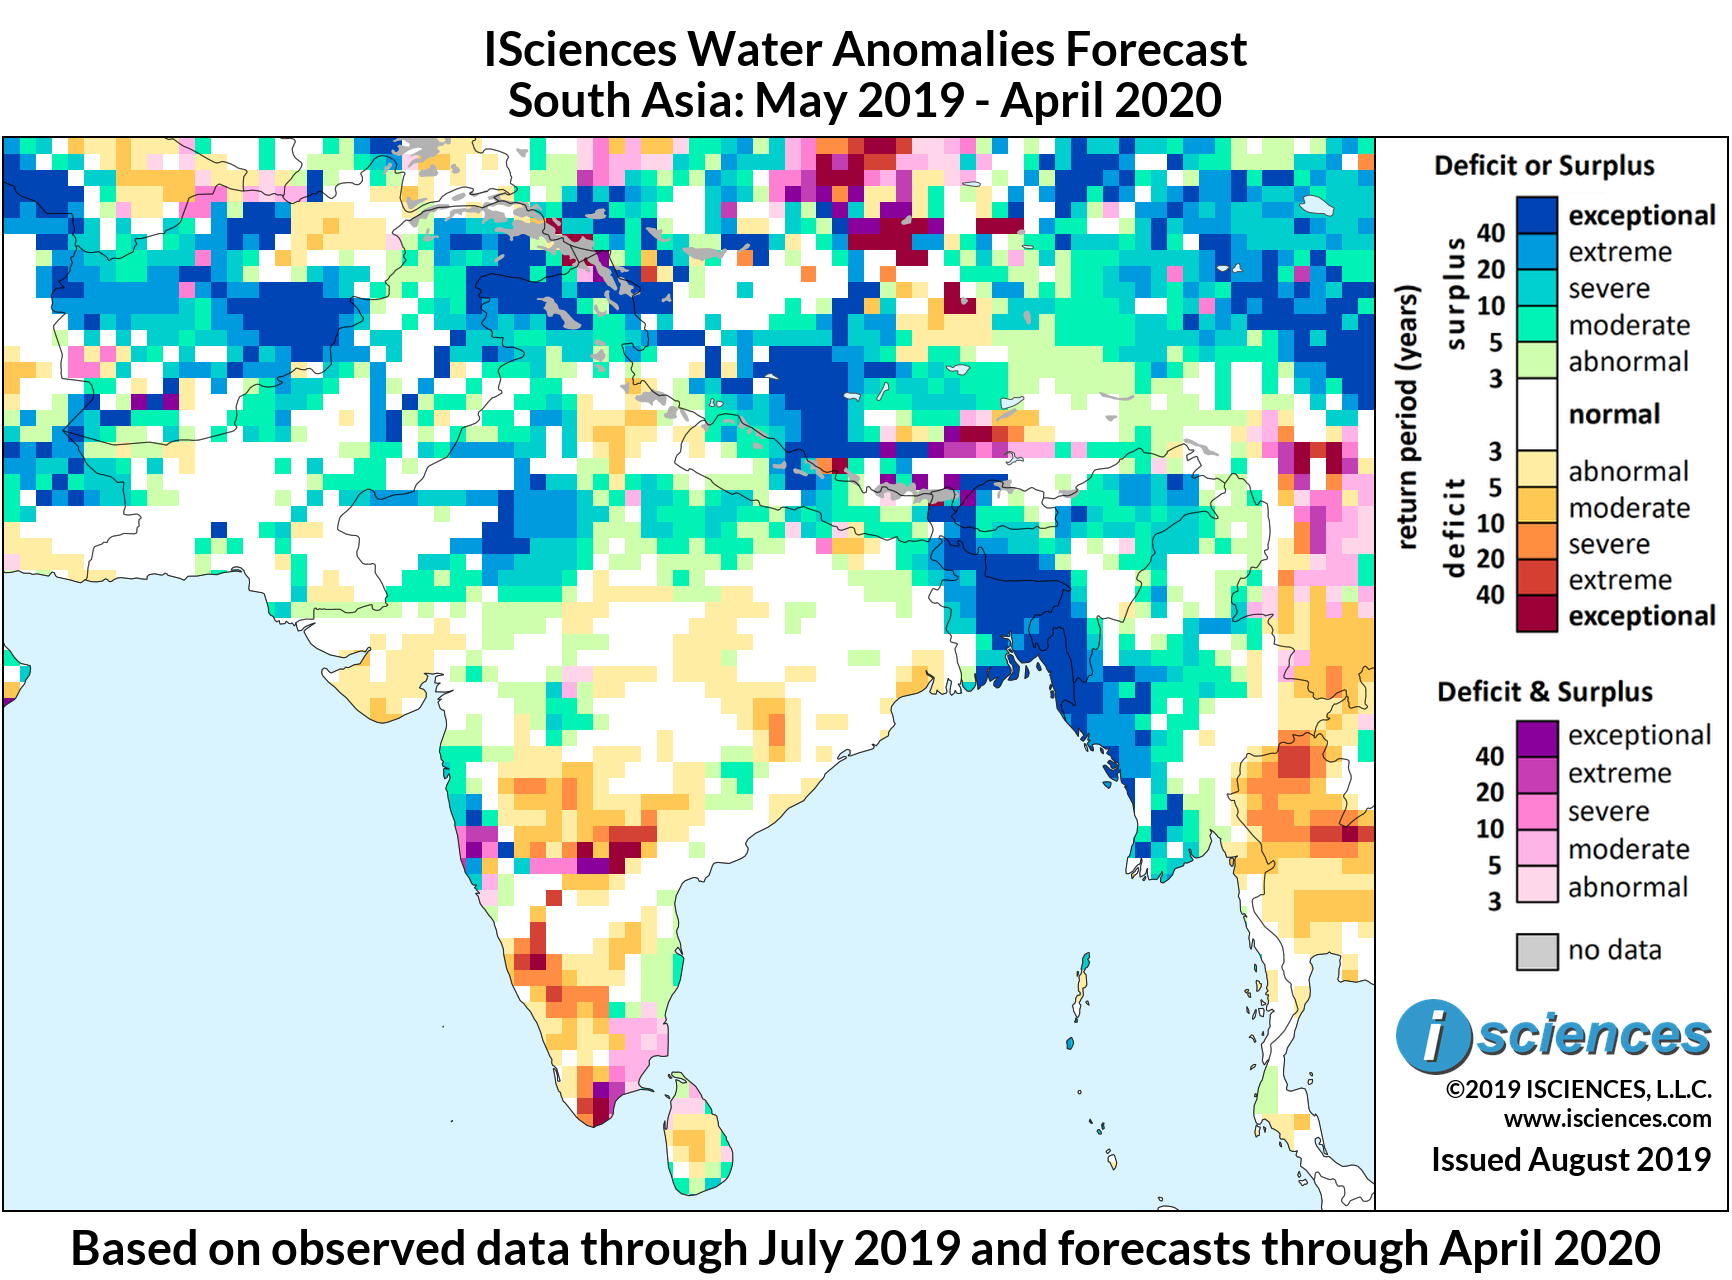 ISciences_South_Asia_Composite_Adjusted_201905-202004_12mo_panel.png